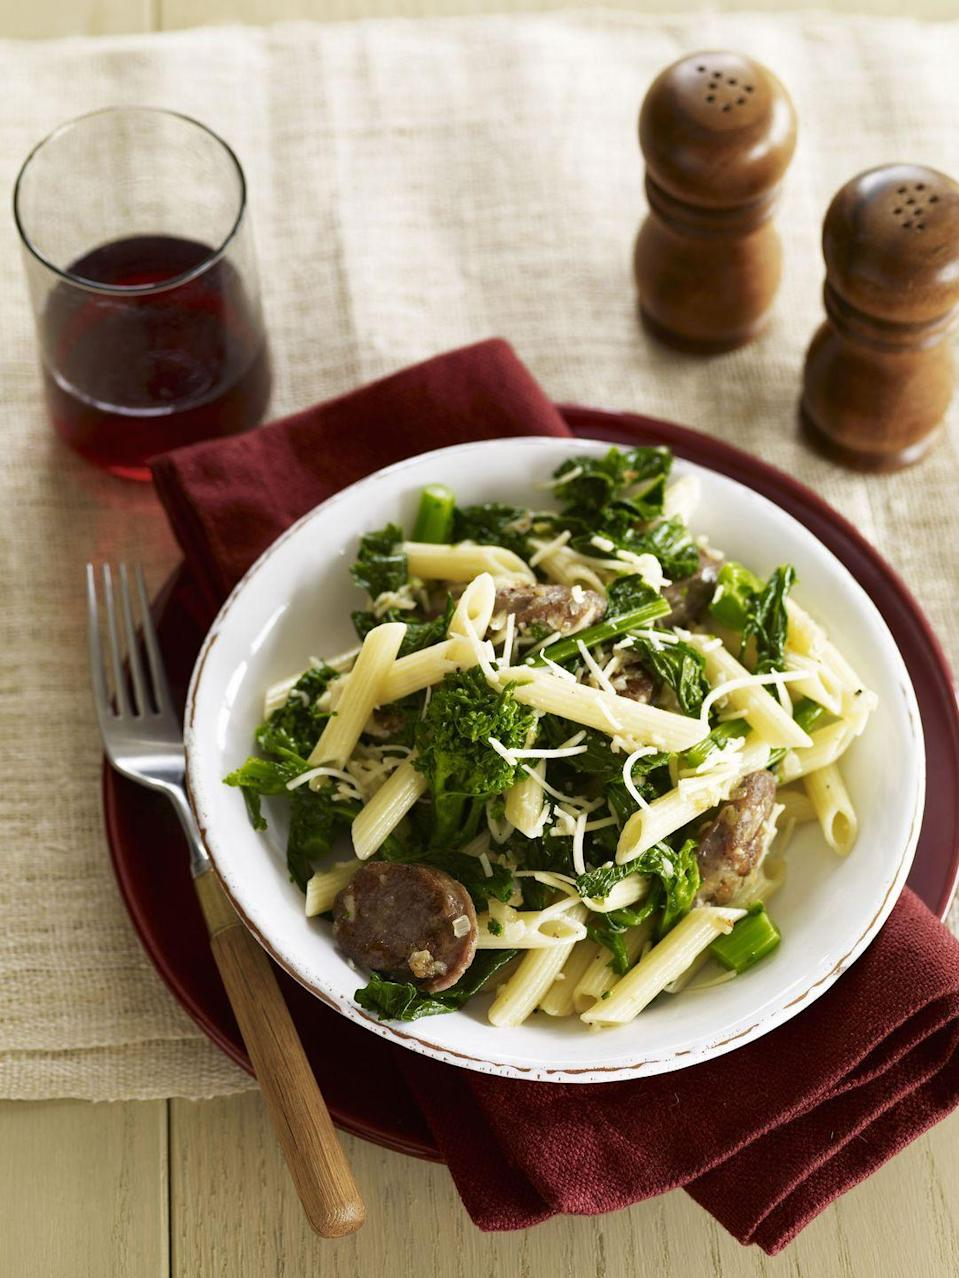 """<p>Enjoy this simple one-dish pasta meal with delicious Italian chicken sausage and broccoli rabe!</p><p><strong><a href=""""https://www.countryliving.com/food-drinks/recipes/a3358/pasta-sausage-broccoli-rabe-recipe/"""" rel=""""nofollow noopener"""" target=""""_blank"""" data-ylk=""""slk:Get the recipe."""" class=""""link rapid-noclick-resp"""">Get the recipe.</a></strong></p>"""